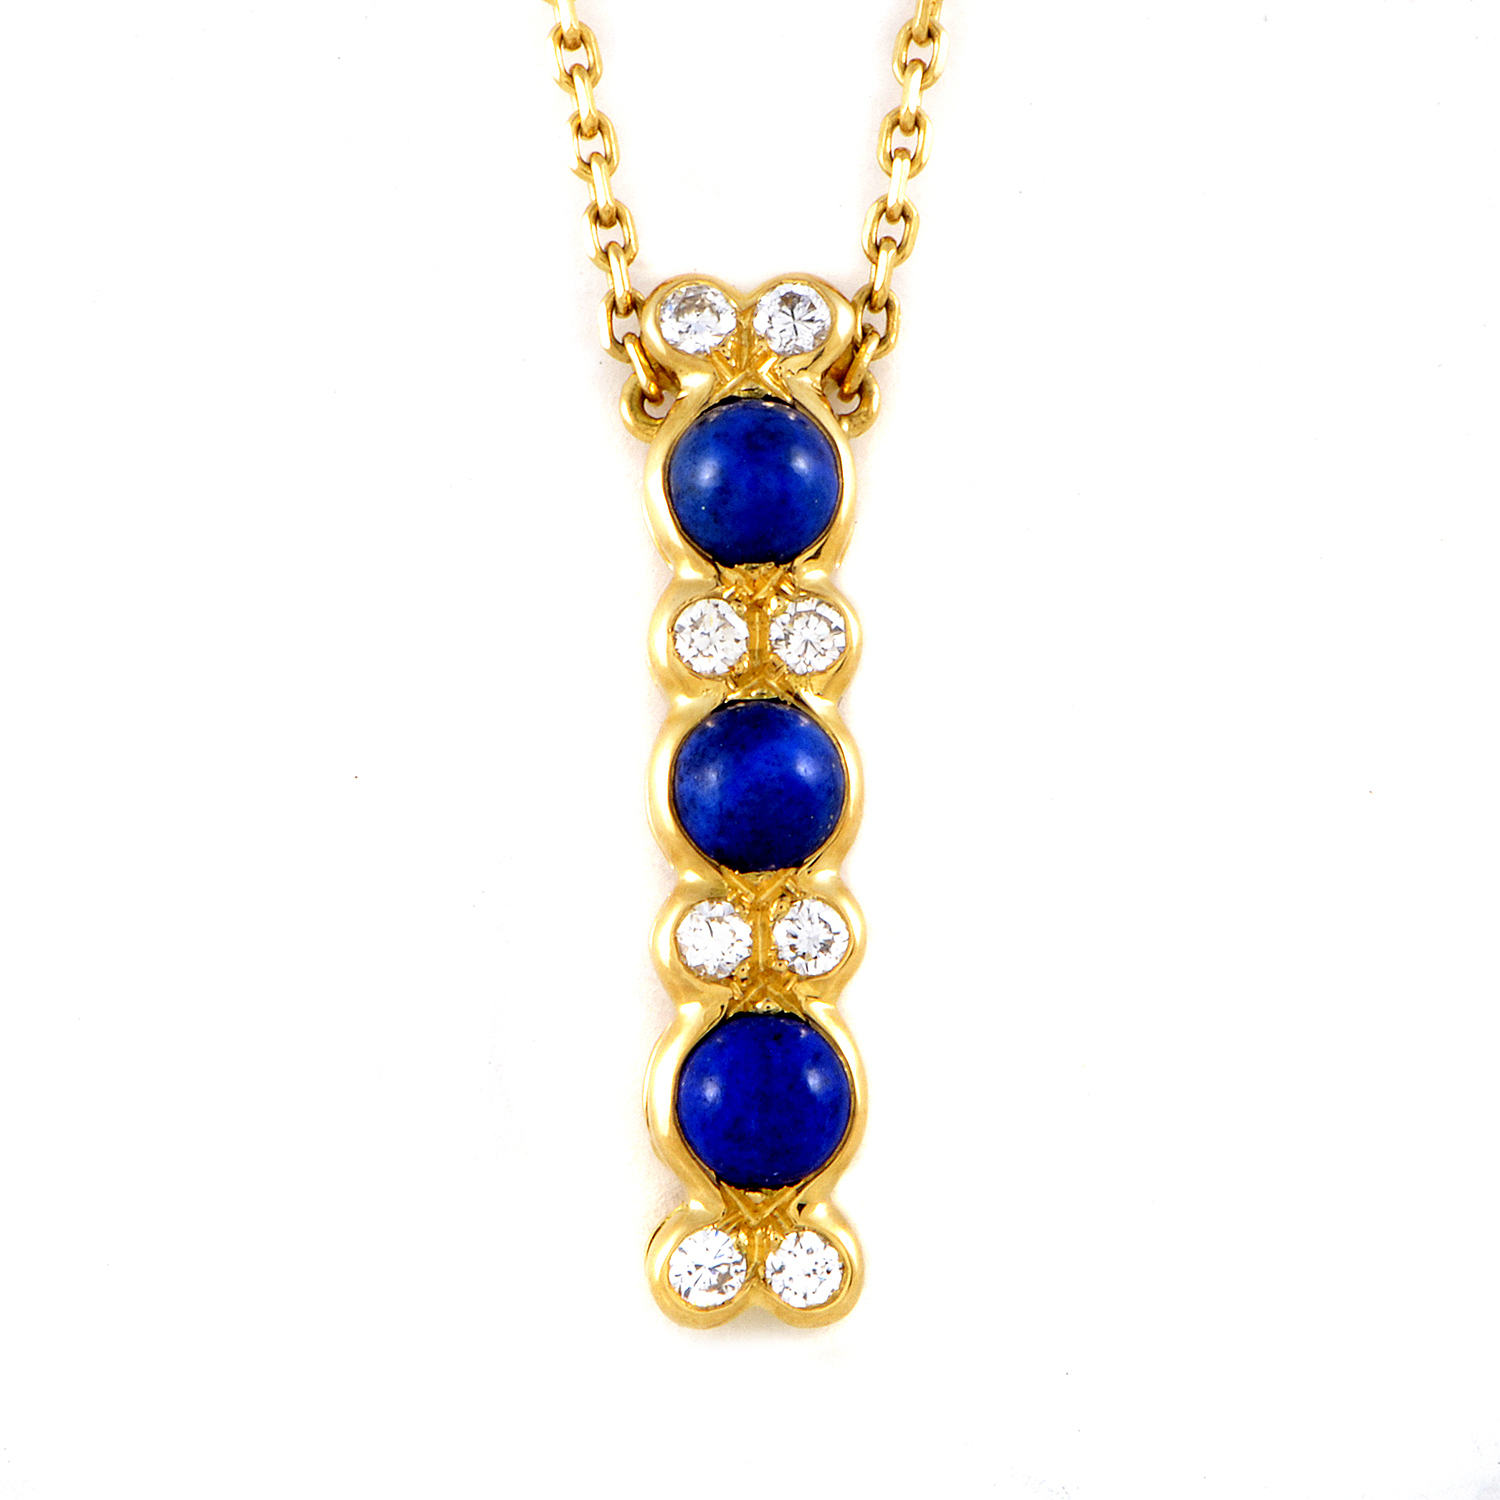 Chaumet Women's 18K Yellow Gold Diamond & Lapis Pendant Necklace